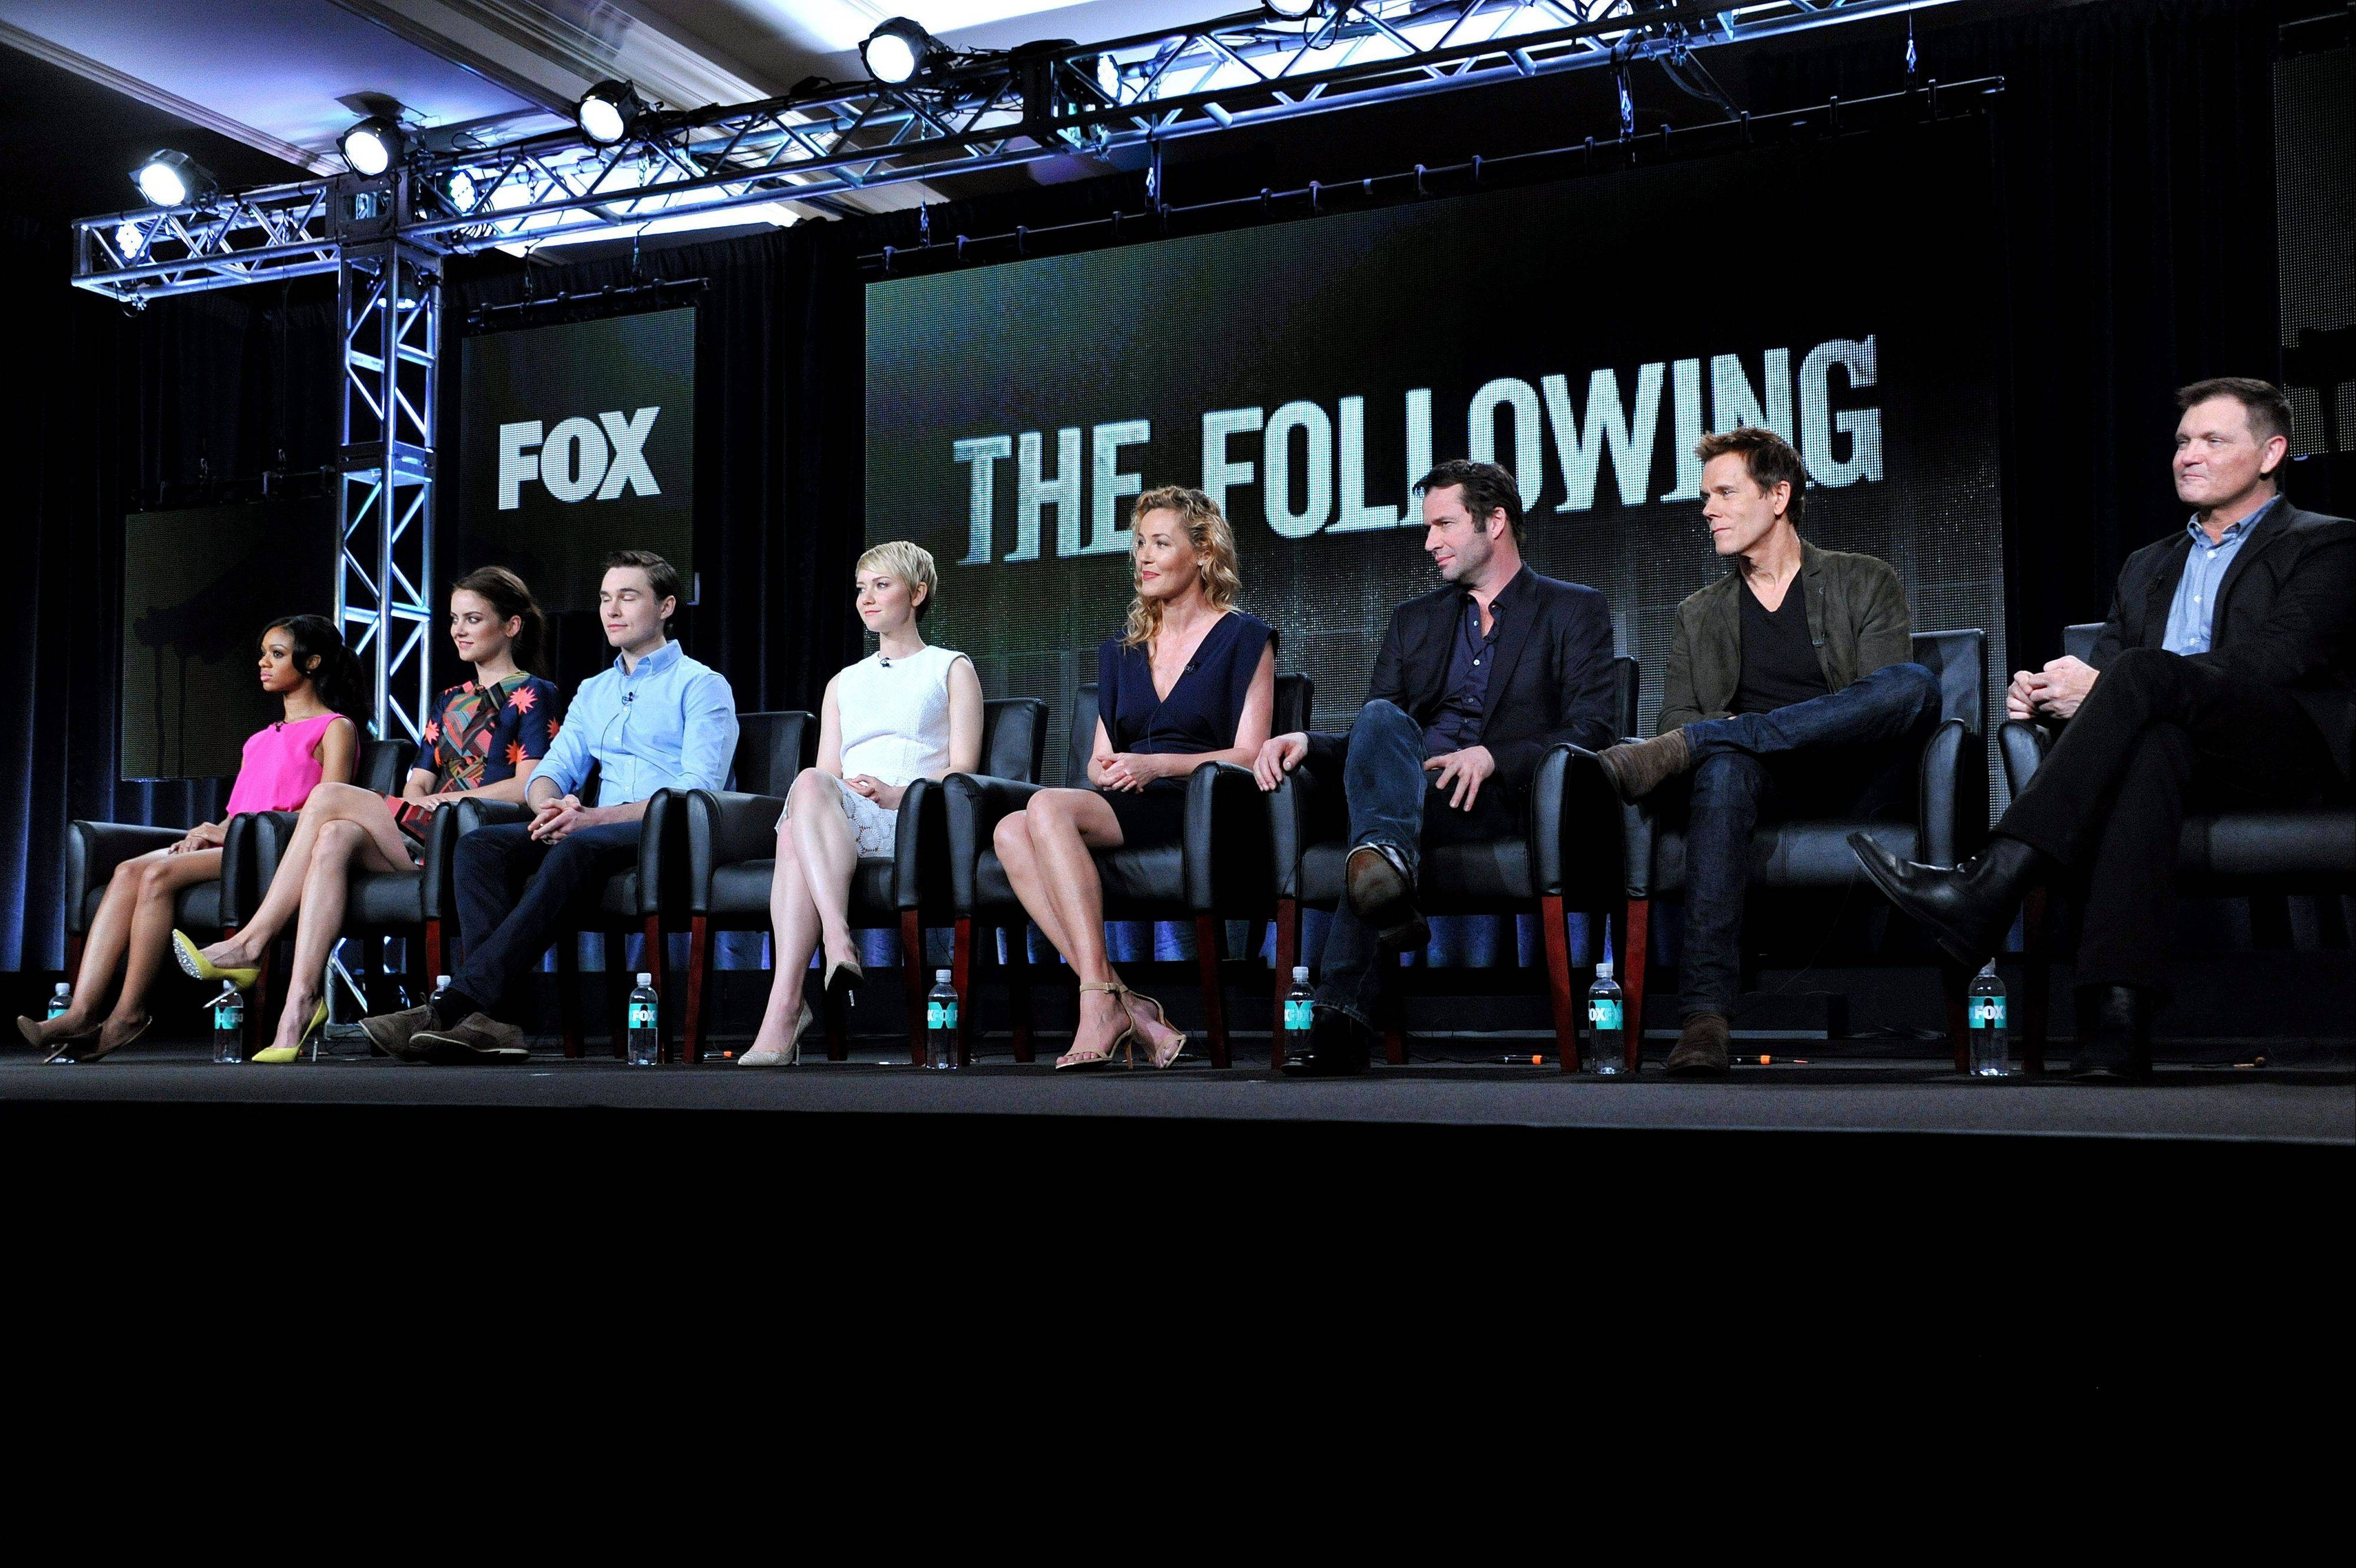 "Tiffany Boone, from left, Jessica Stroup, Sam Underwood, Valorie Curry, Connie Nielson, James Purefoy, Kevin Bacon and creator Kevin Williamson are seen during the panel for ""The Following"" at the FOX Winter 2014 TCA Monday at the Langham Hotel in Pasadena, Calif."